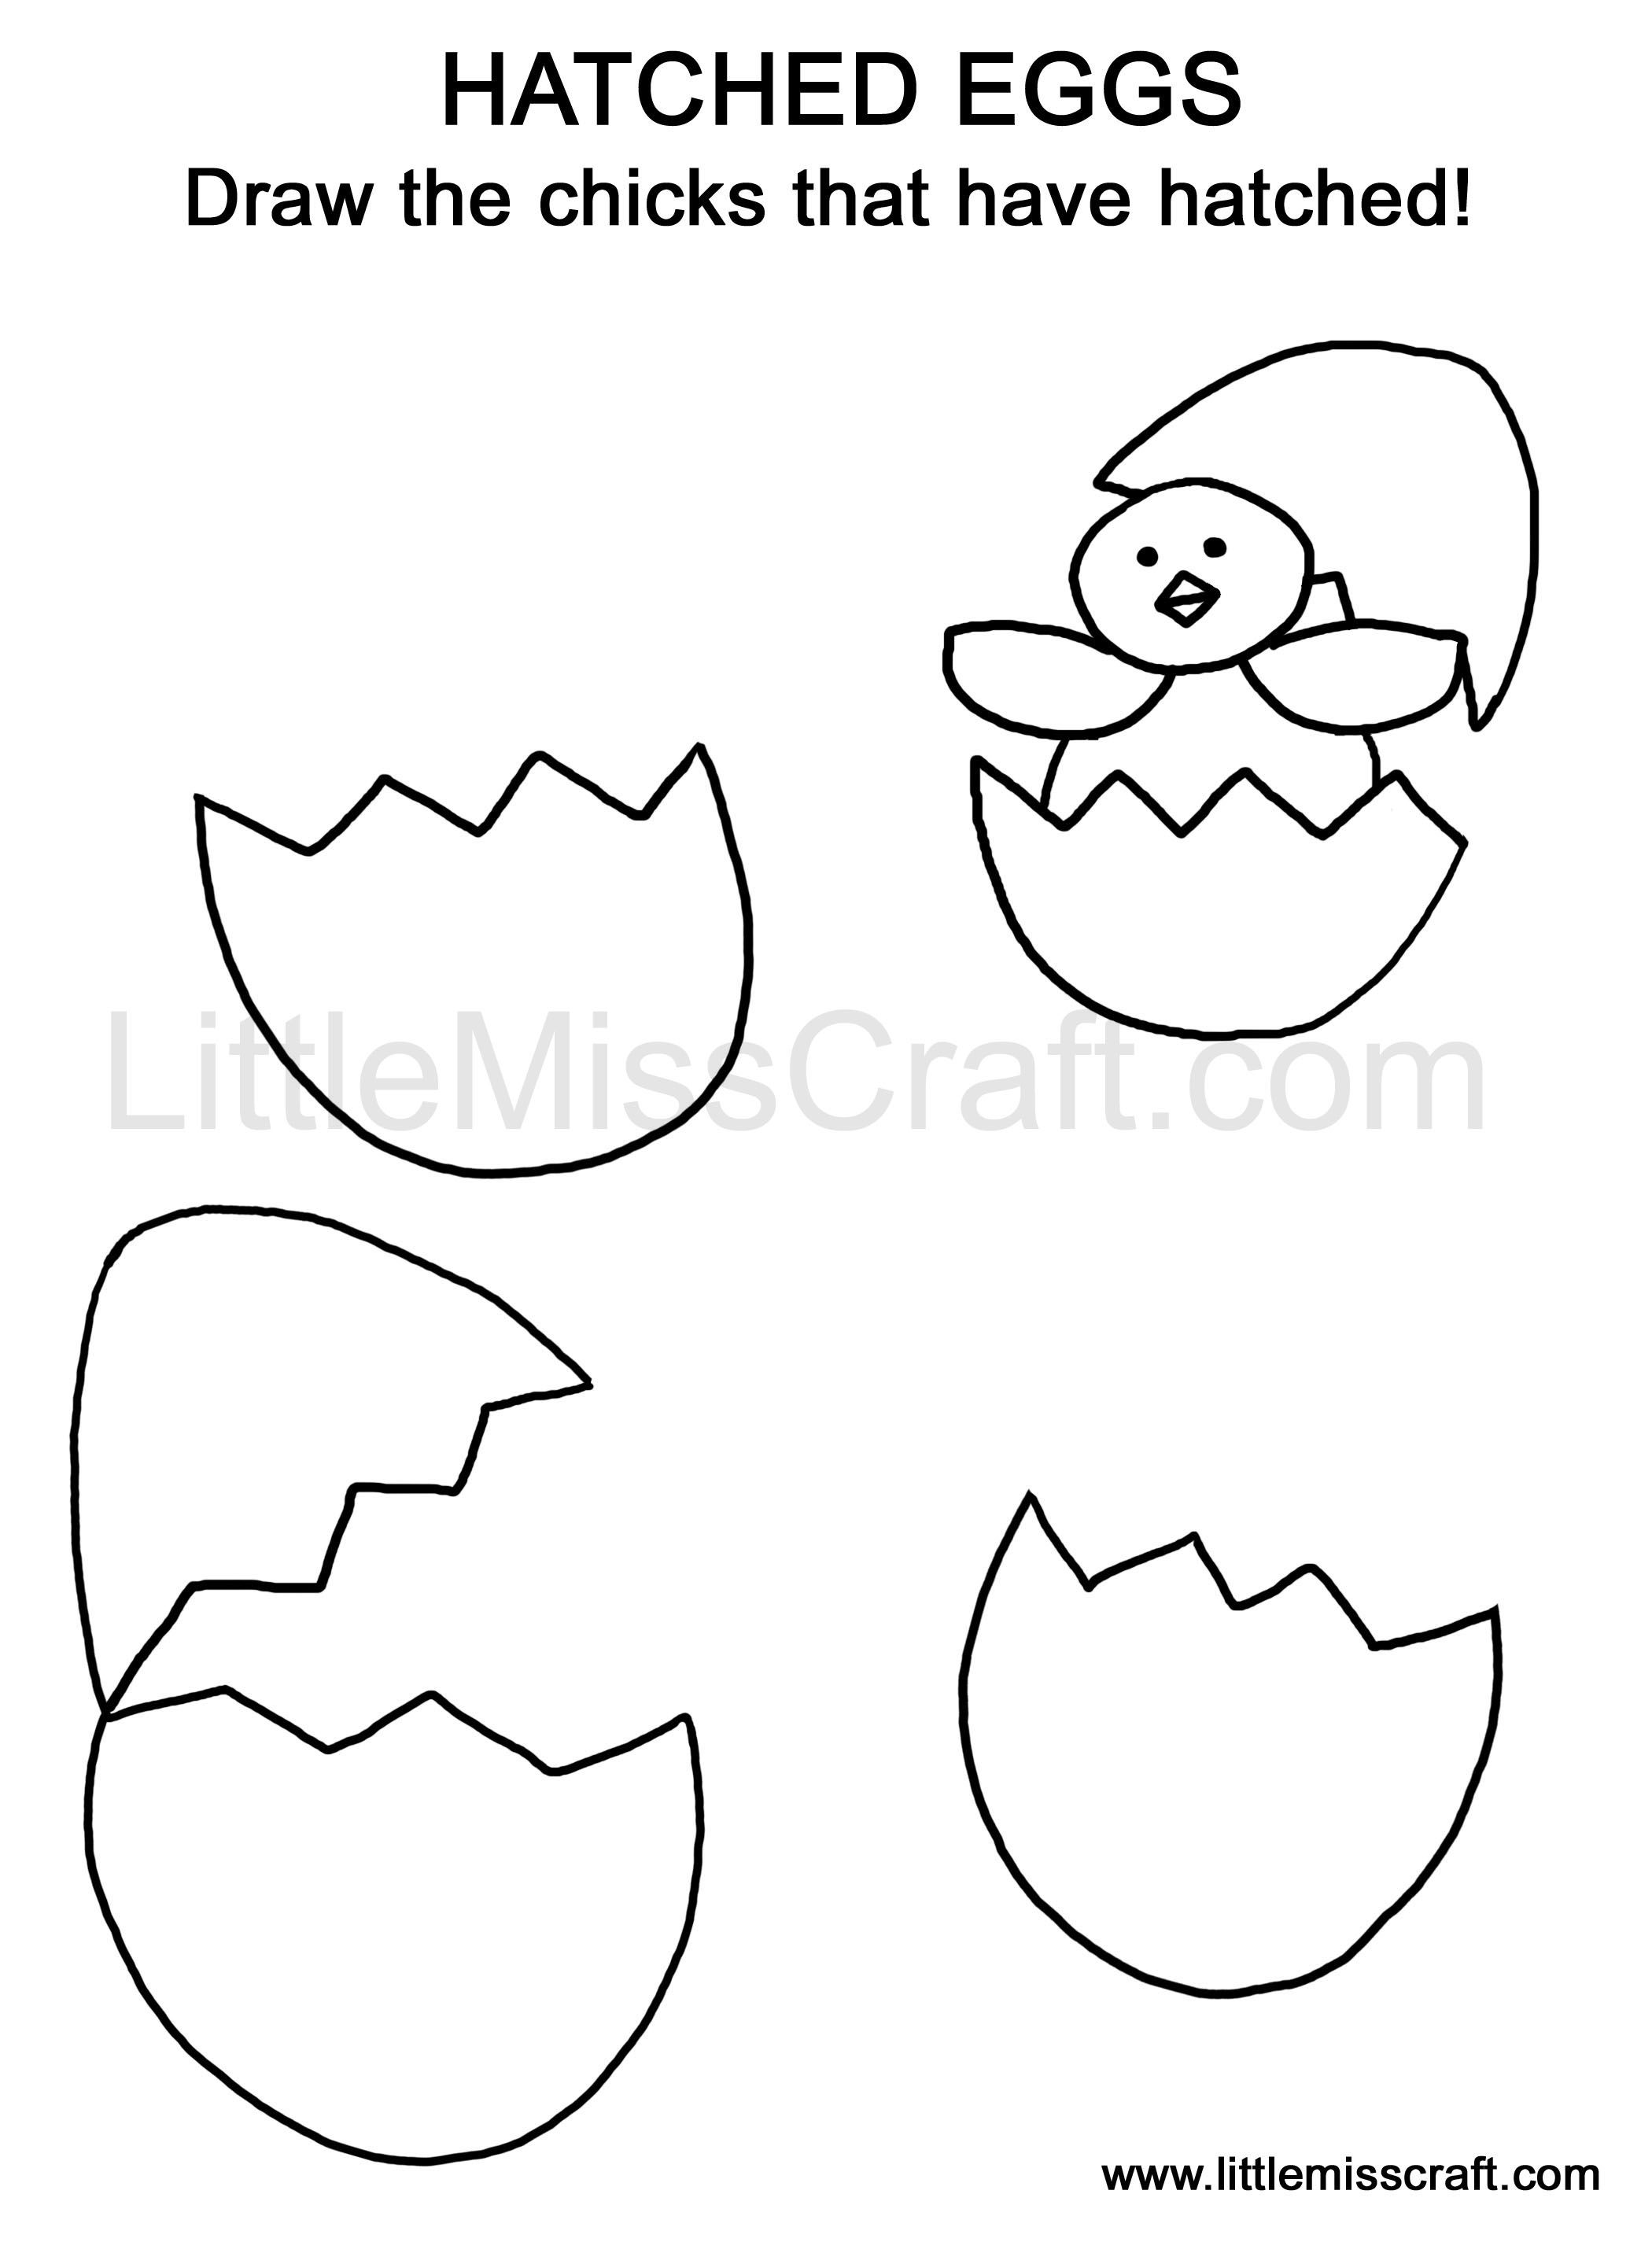 Draw The Chicks That Have Hatched Doodle Coloring Page Ready To Print At Littlemisscraft Egg 230 1